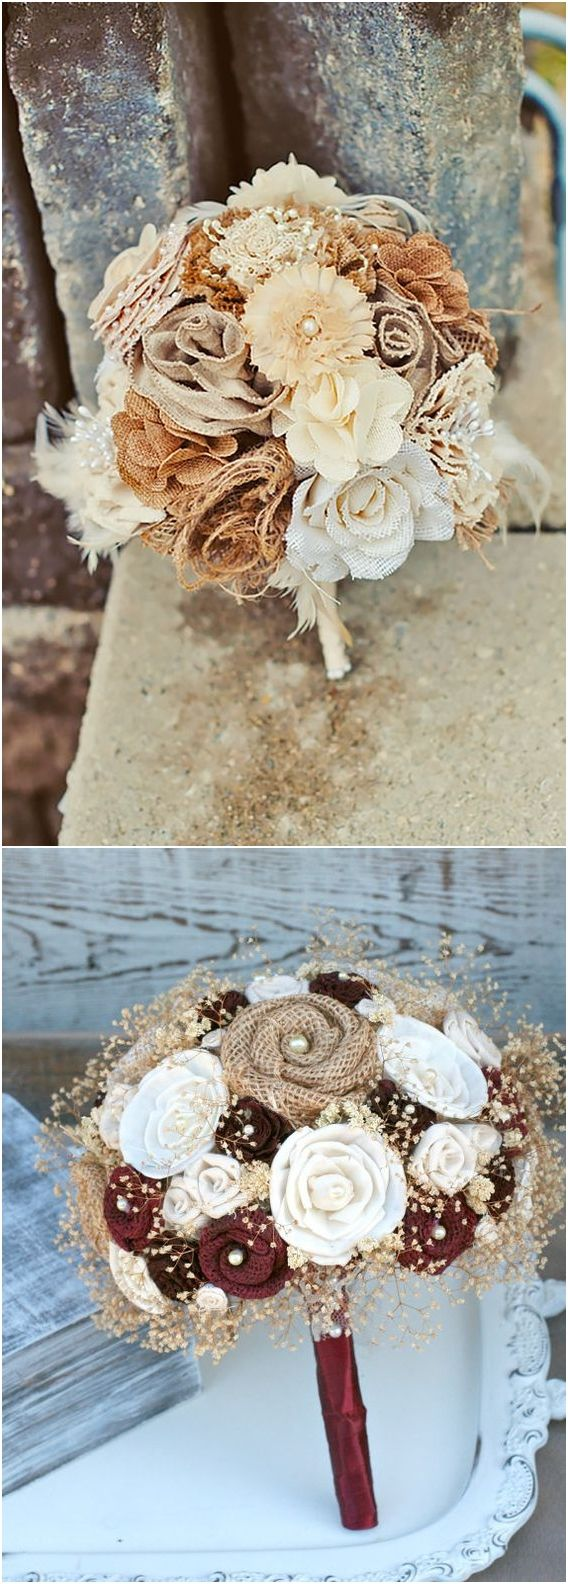 Rustic Country Swoon-Worthy Burlap Wedding Bouquets #weddings #rusticweddings #countryweddings http://www.rosesandrings.com/burlap-wedding-bouquets/